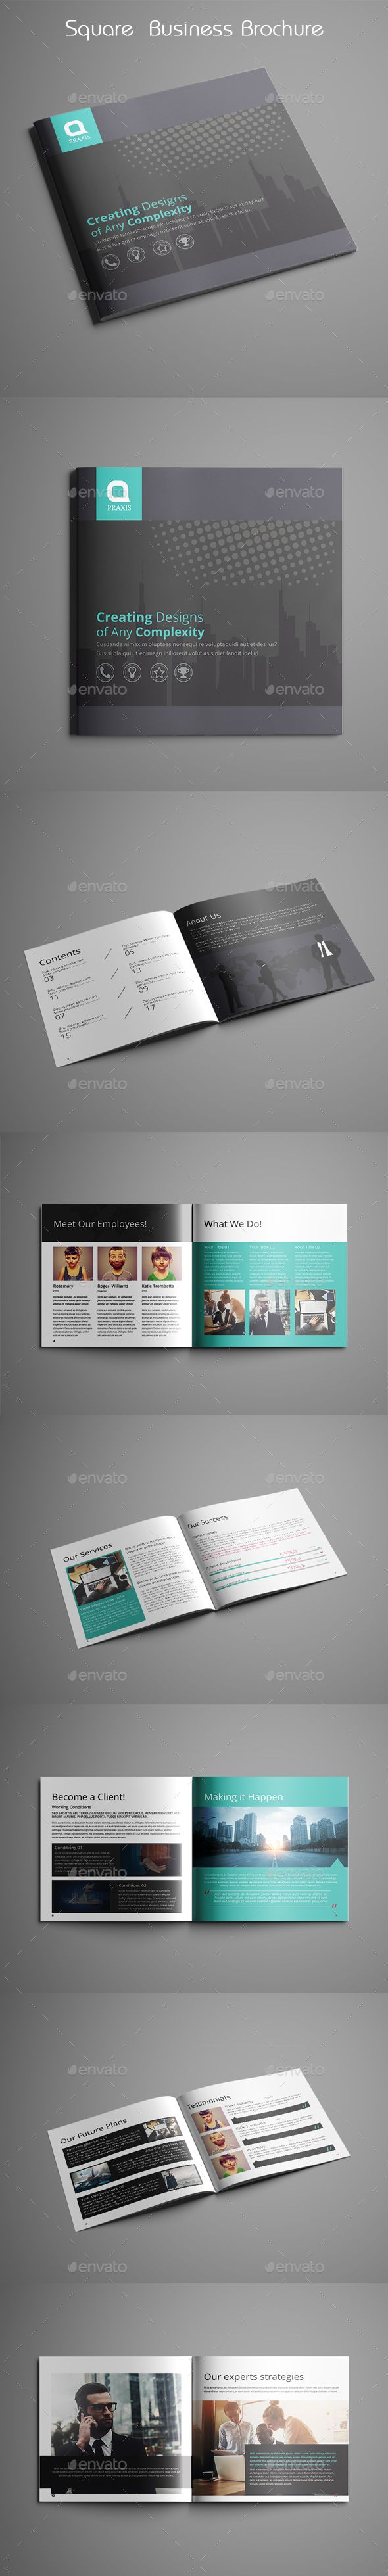 Square Business Brochure — InDesign INDD #20x20 #cmyk • Download ➝ https://graphicriver.net/item/square-business-brochure/18845908?ref=pxcr